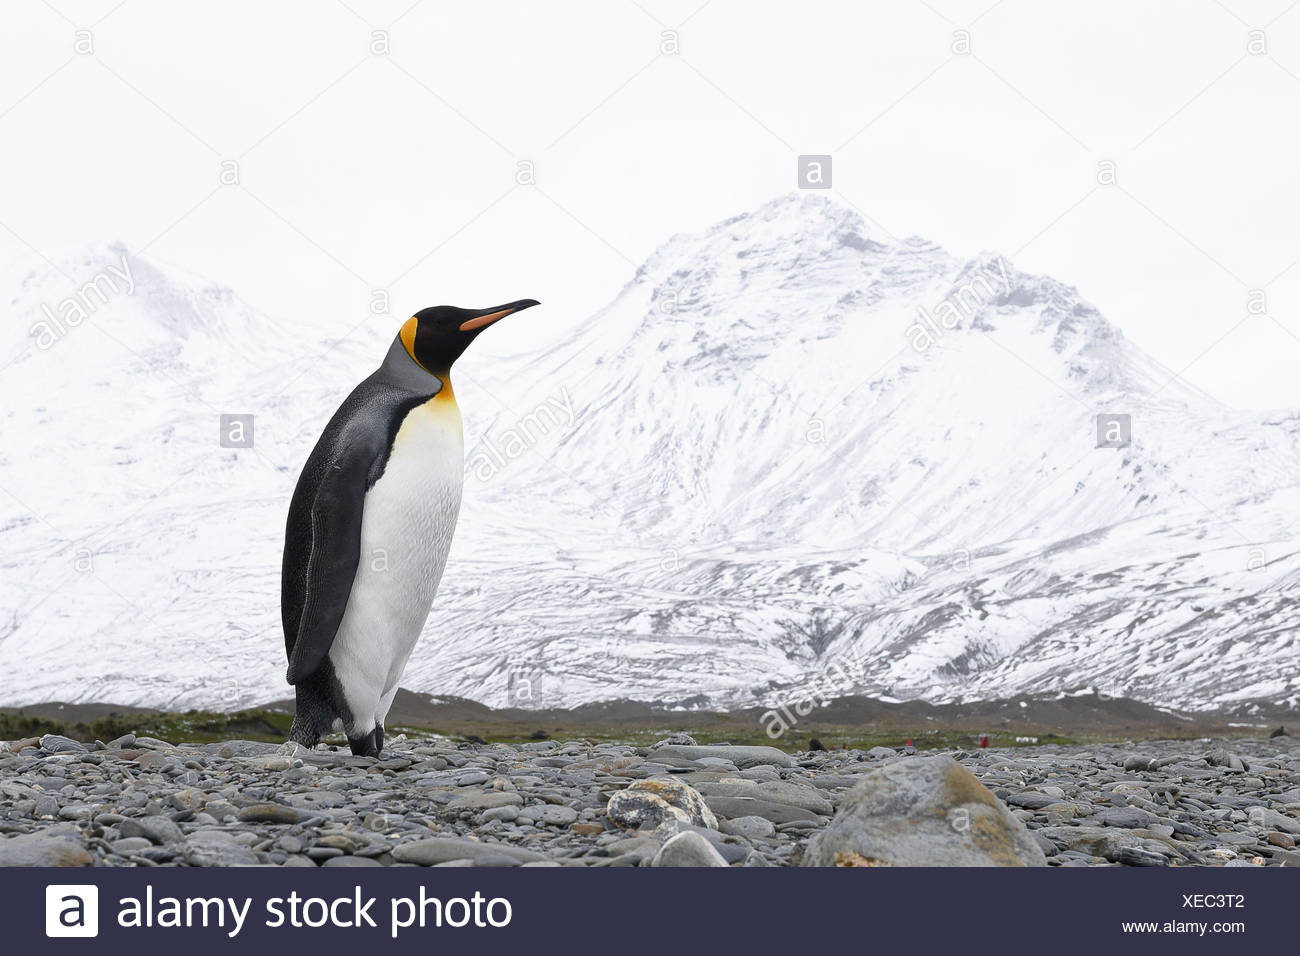 Lone King penguins (Aptenodytes patagonicus) on a beach; South Georgia, South Georgia, South Georgia and the South Sandwich Islands, United Kingdom - Stock Image